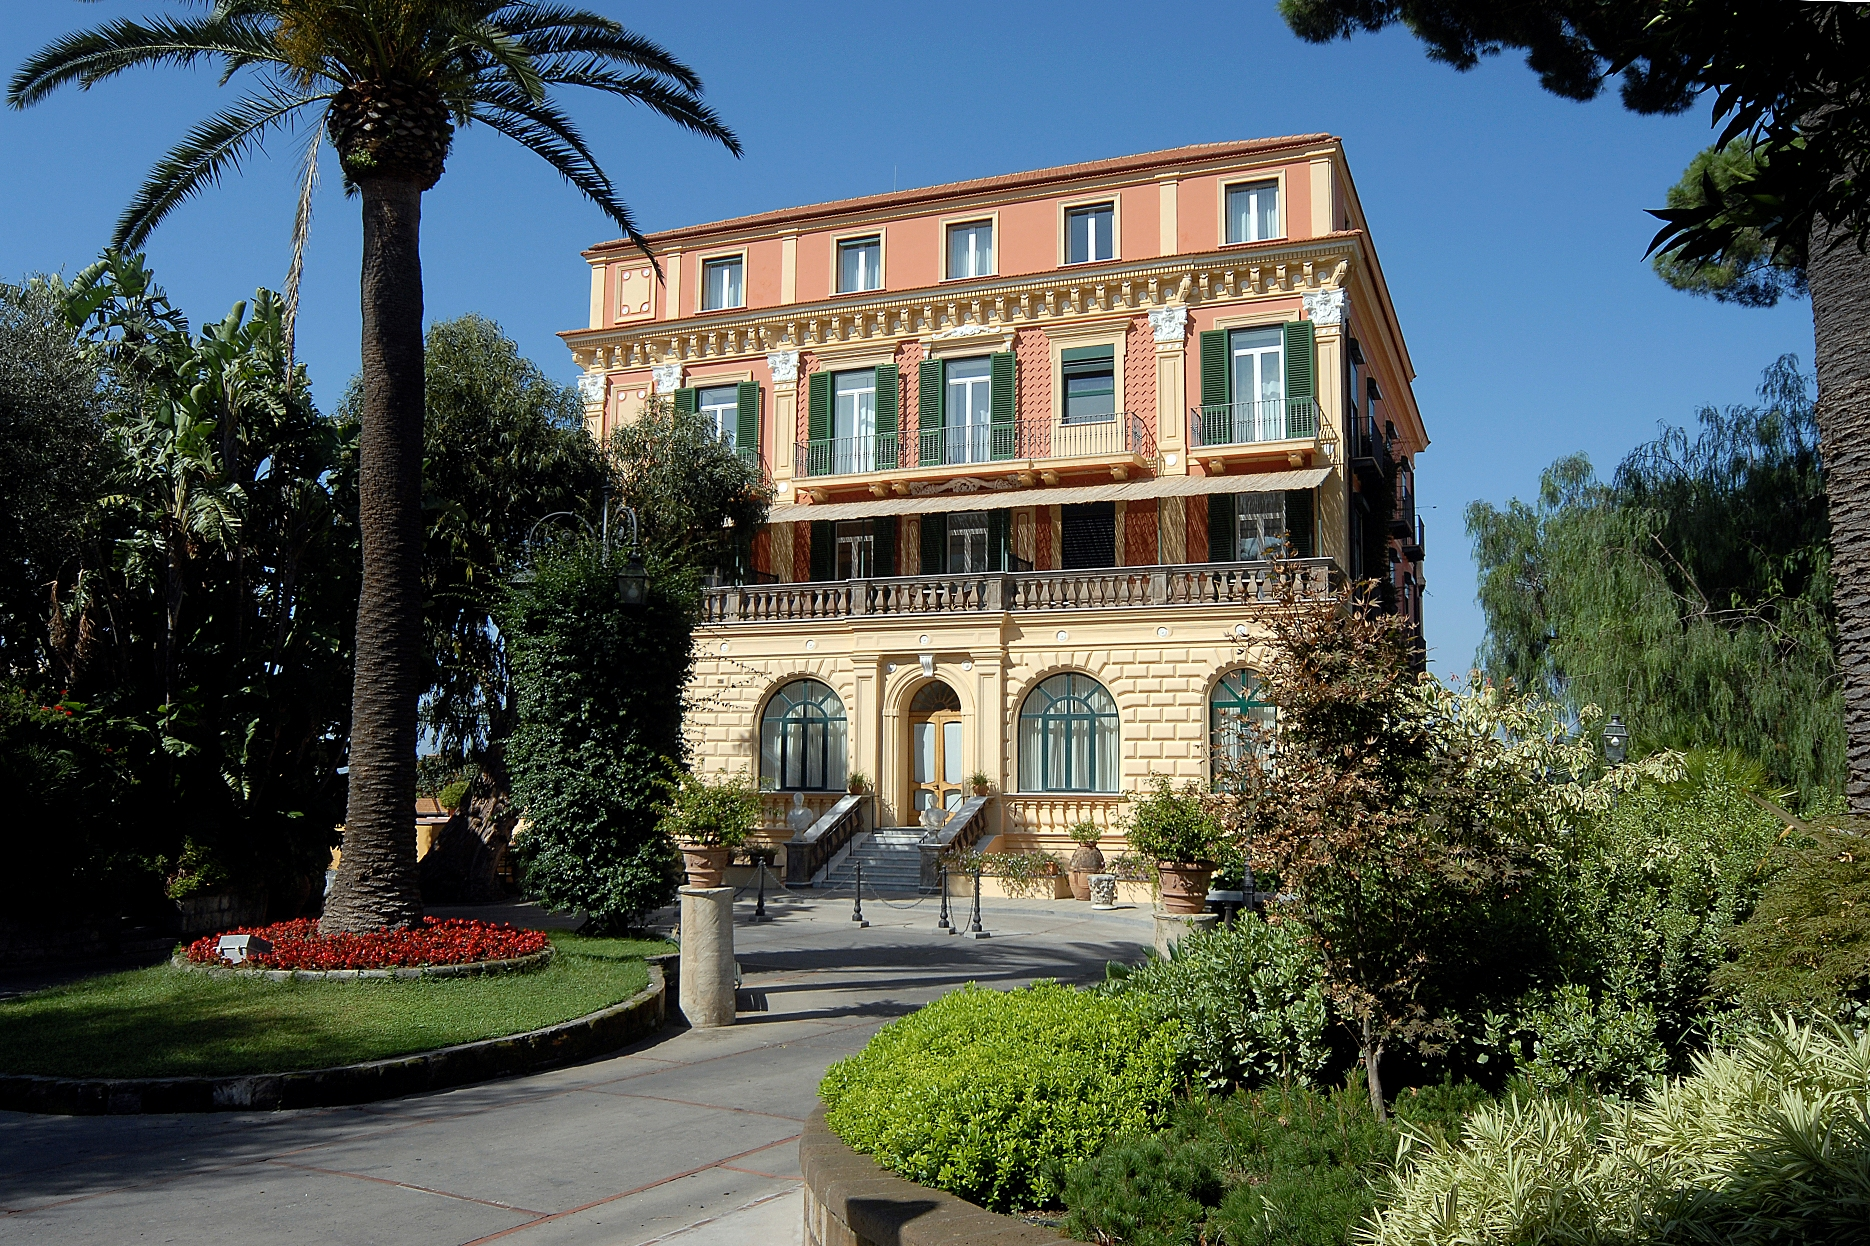 Grand Hotel Excelsior Vittoria Sorrento outside